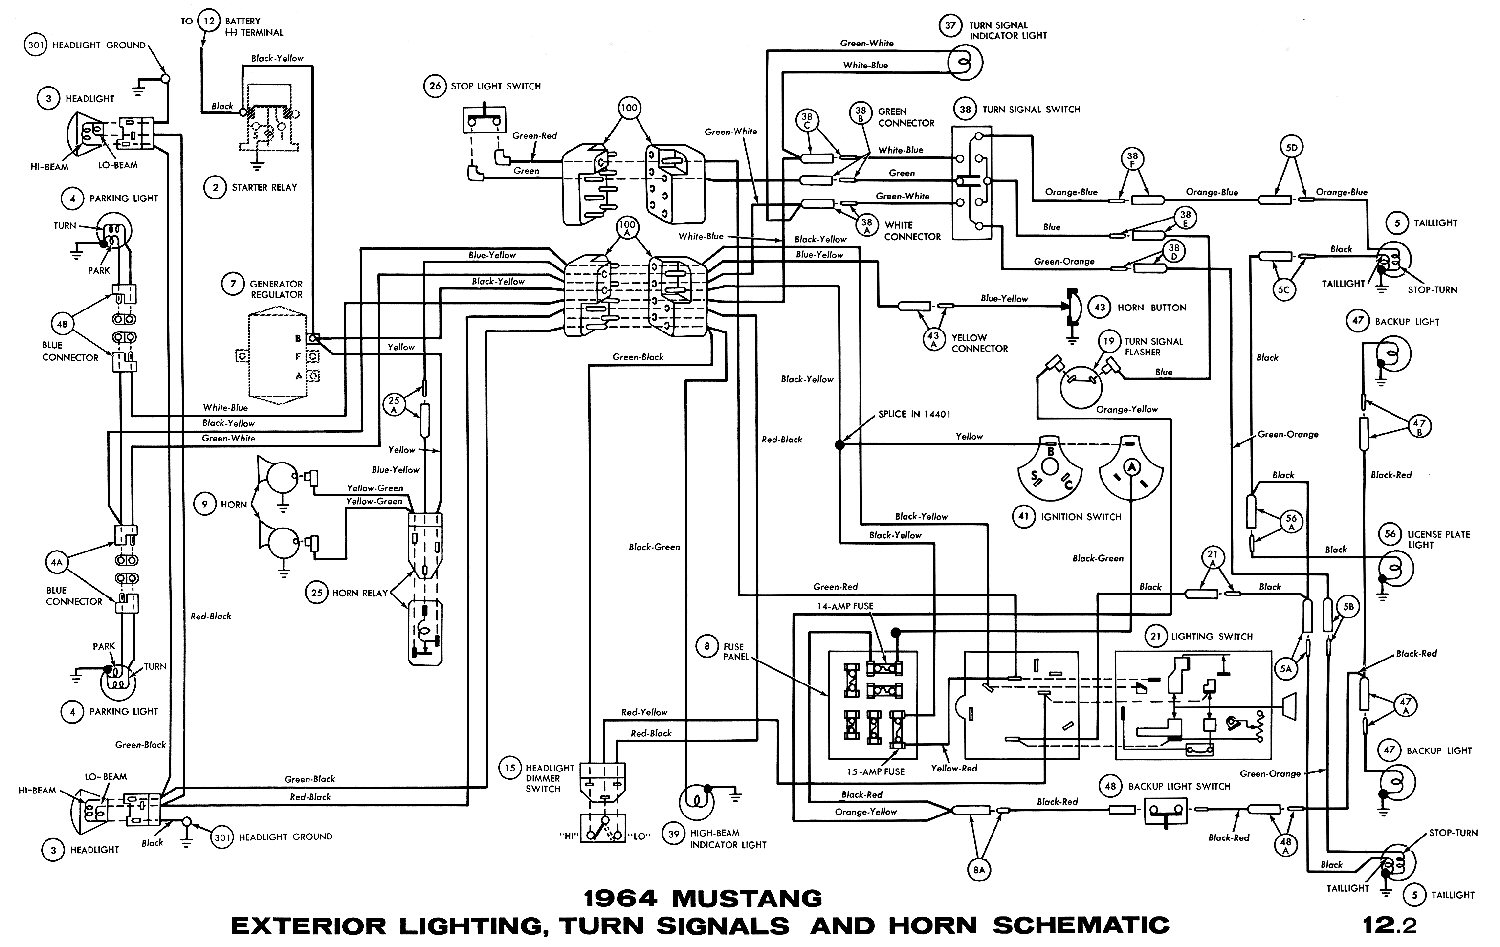 1964i 1964 mustang wiring diagrams average joe restoration ford mustang wiring diagram at arjmand.co